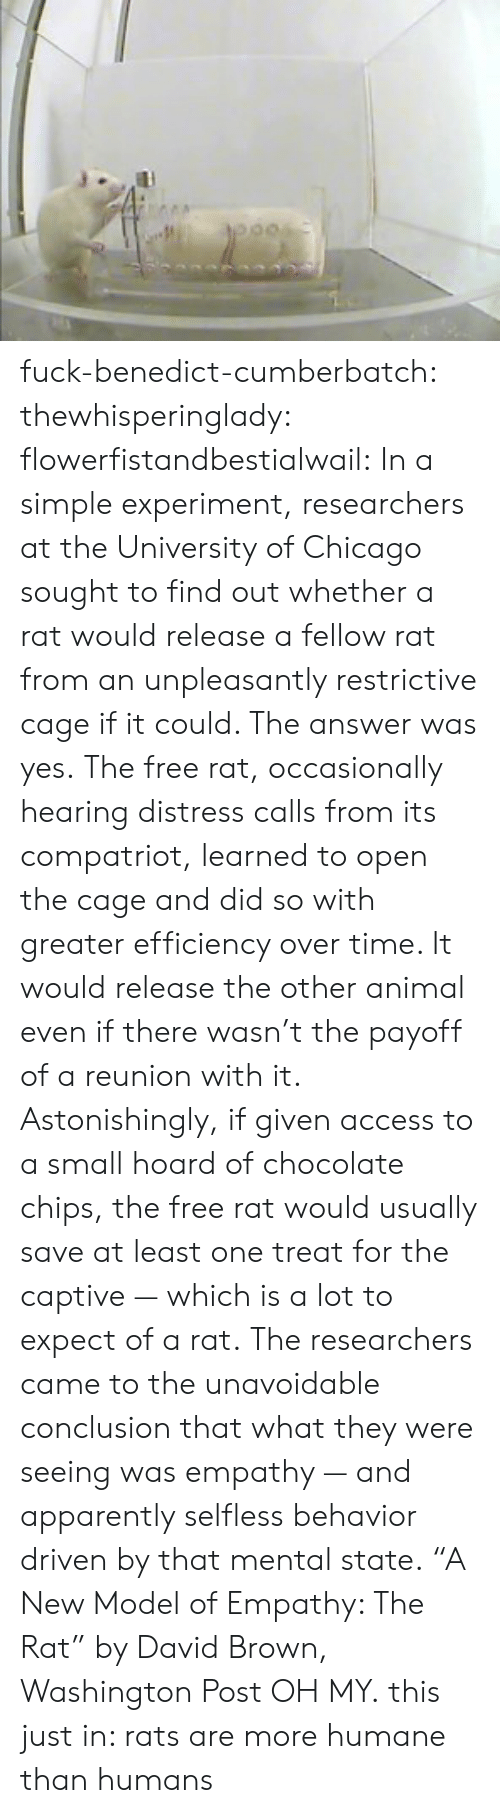 "Washington Post: fuck-benedict-cumberbatch:  thewhisperinglady:  flowerfistandbestialwail:   In a simple experiment, researchers at the University of Chicago sought to find out whether a rat would release a fellow rat from an unpleasantly restrictive cage if it could. The answer was yes. The free rat, occasionally hearing distress calls from its compatriot, learned to open the cage and did so with greater efficiency over time. It would release the other animal even if there wasn't the payoff of a reunion with it. Astonishingly, if given access to a small hoard of chocolate chips, the free rat would usually save at least one treat for the captive — which is a lot to expect of a rat. The researchers came to the unavoidable conclusion that what they were seeing was empathy — and apparently selfless behavior driven by that mental state. ""A New Model of Empathy: The Rat"" by David Brown, Washington Post   OH MY.  this just in: rats are more humane than humans"